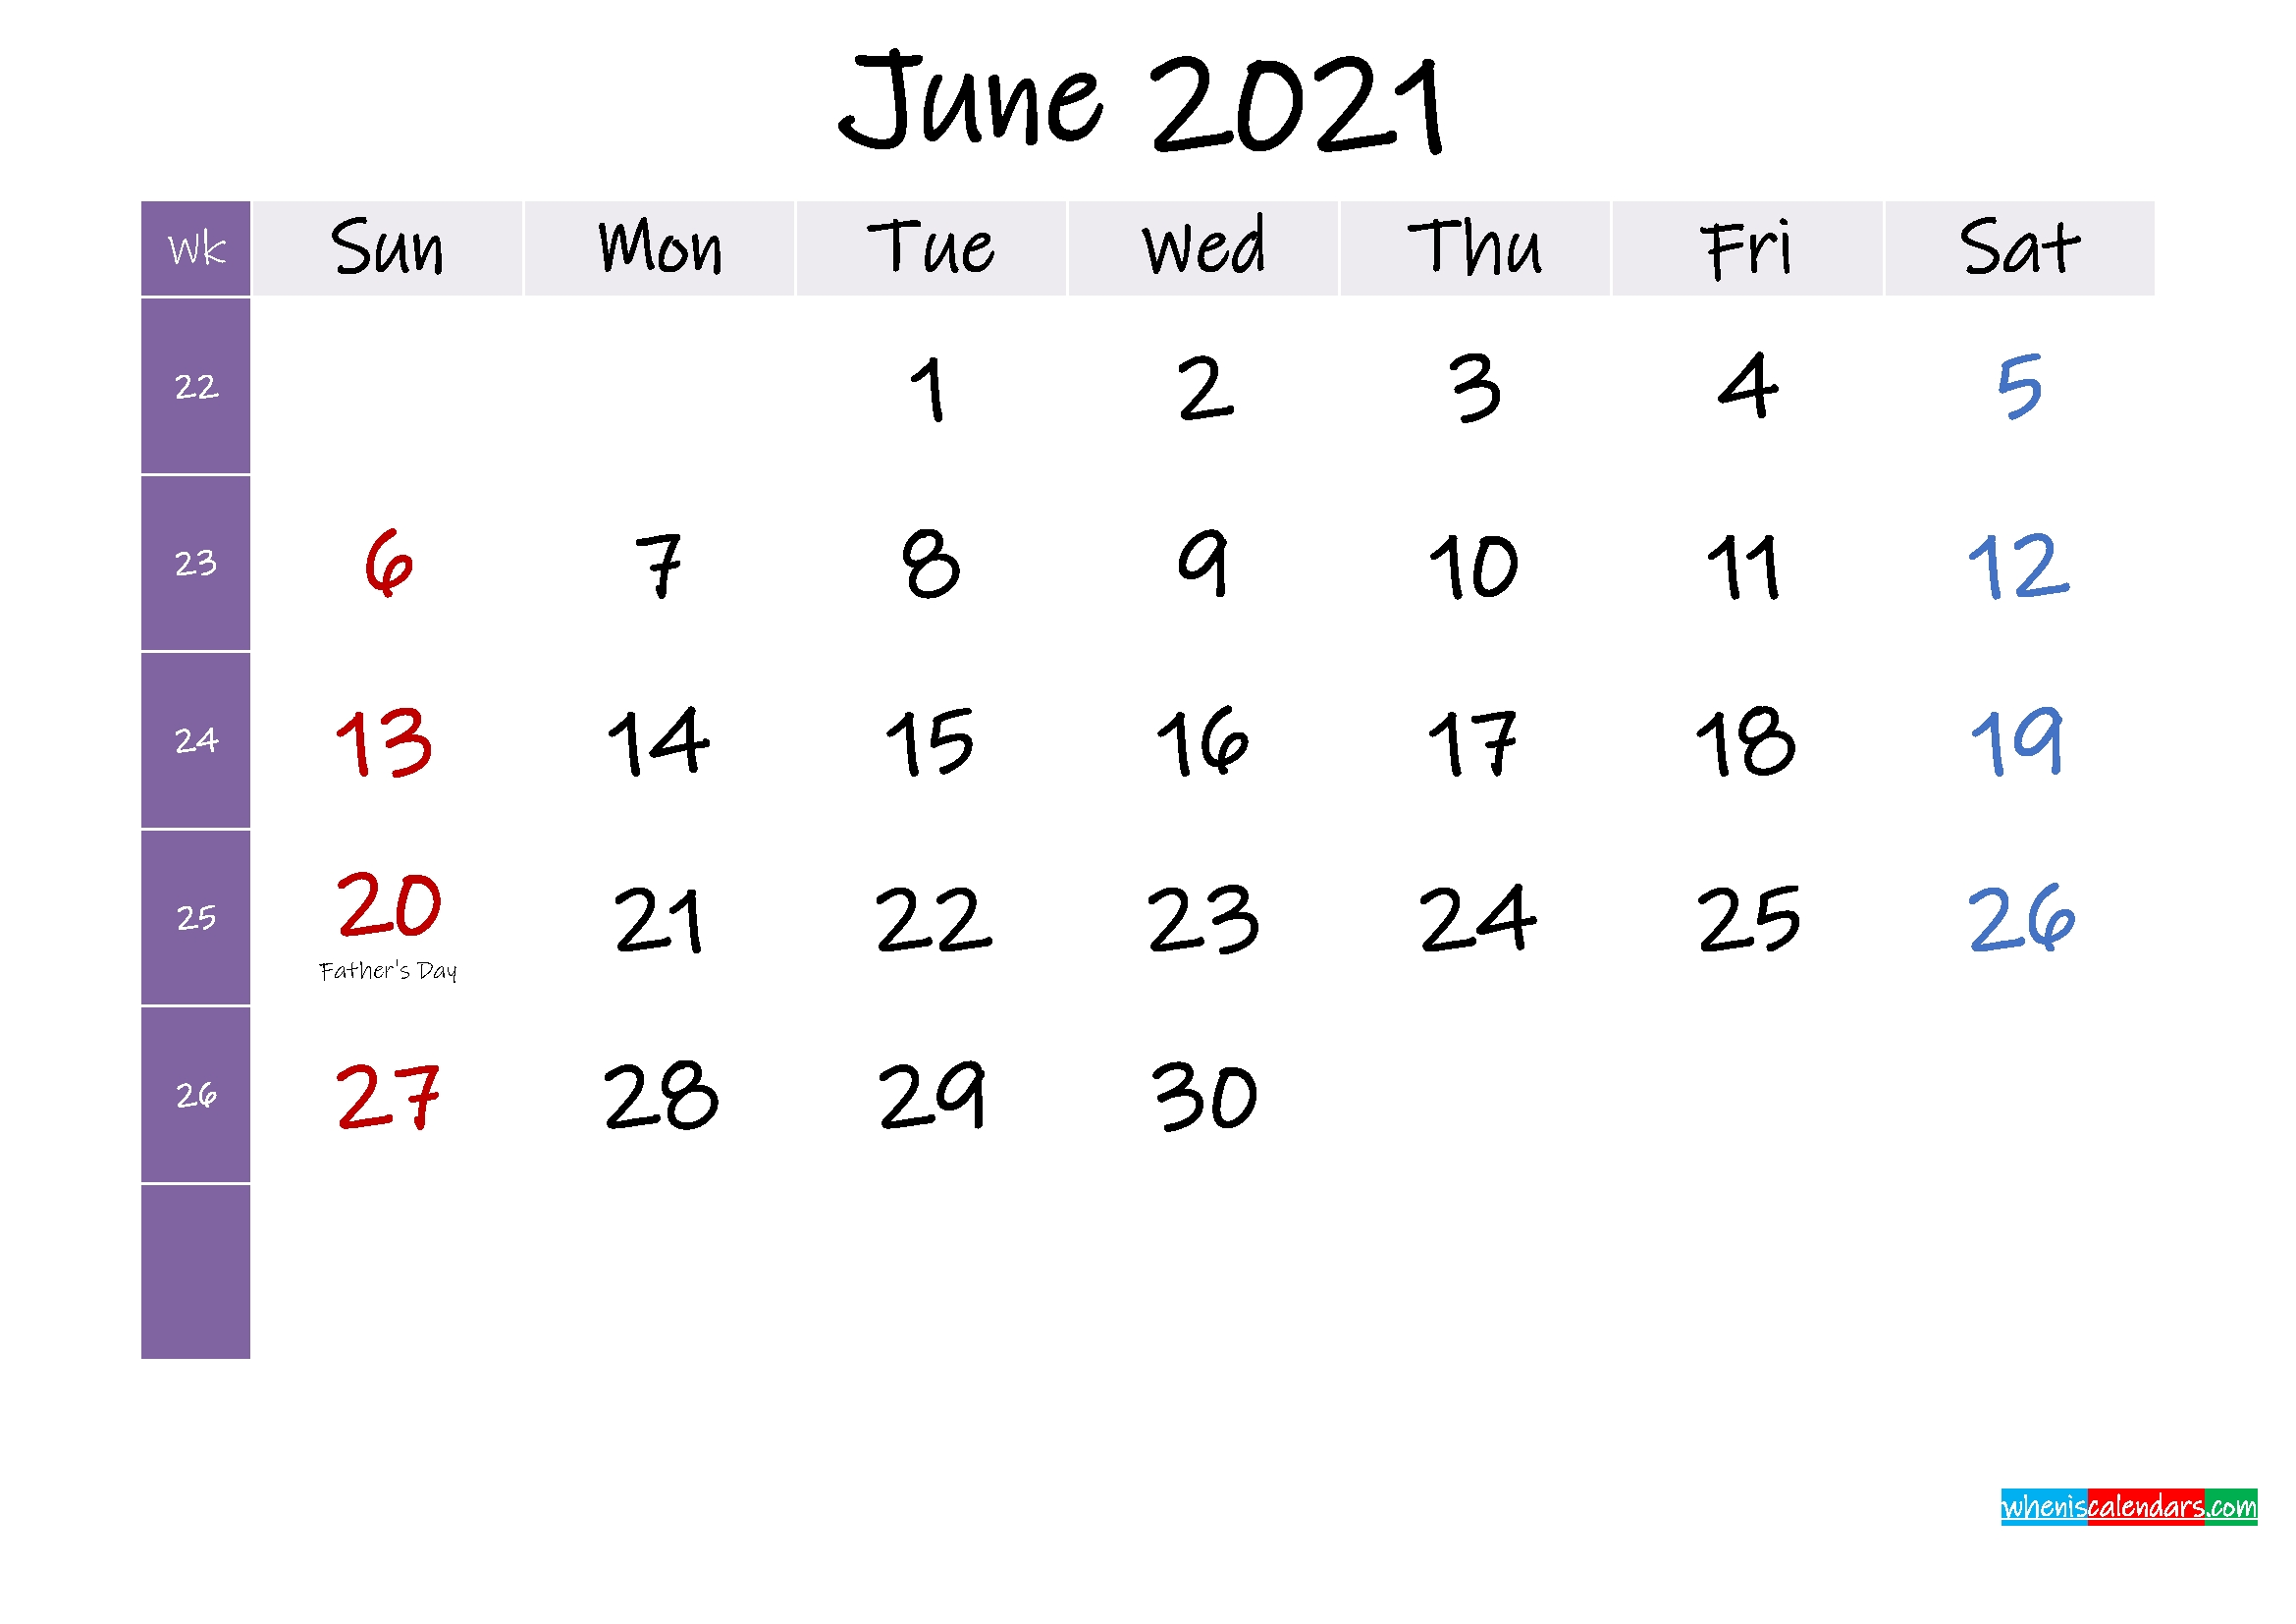 June 2021 Free Printable Calendar With Holidays - Template